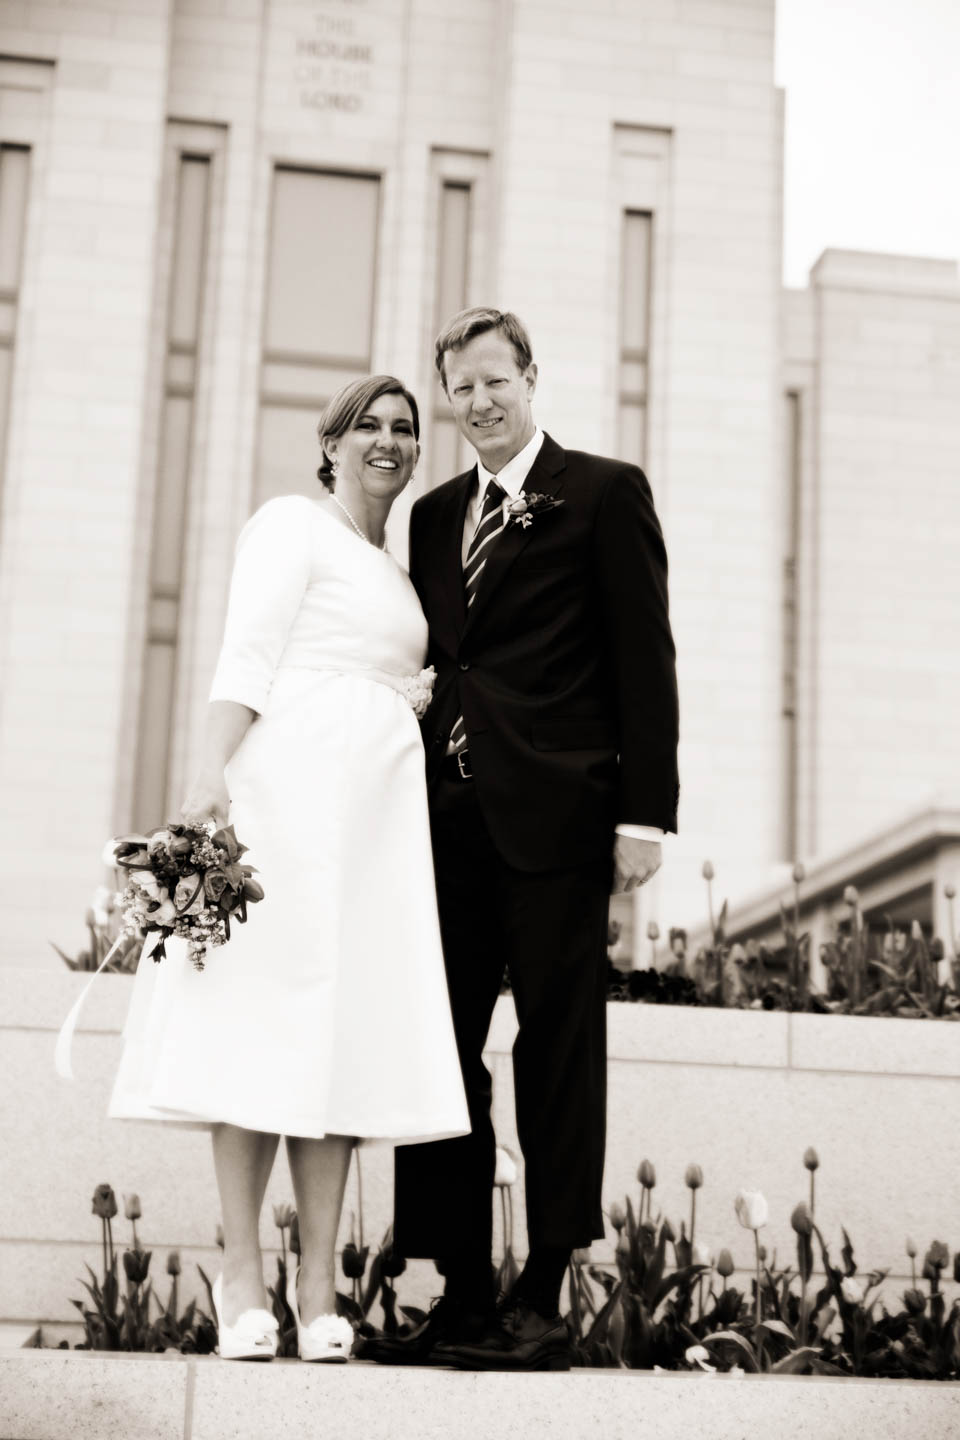 Formal wedding photography